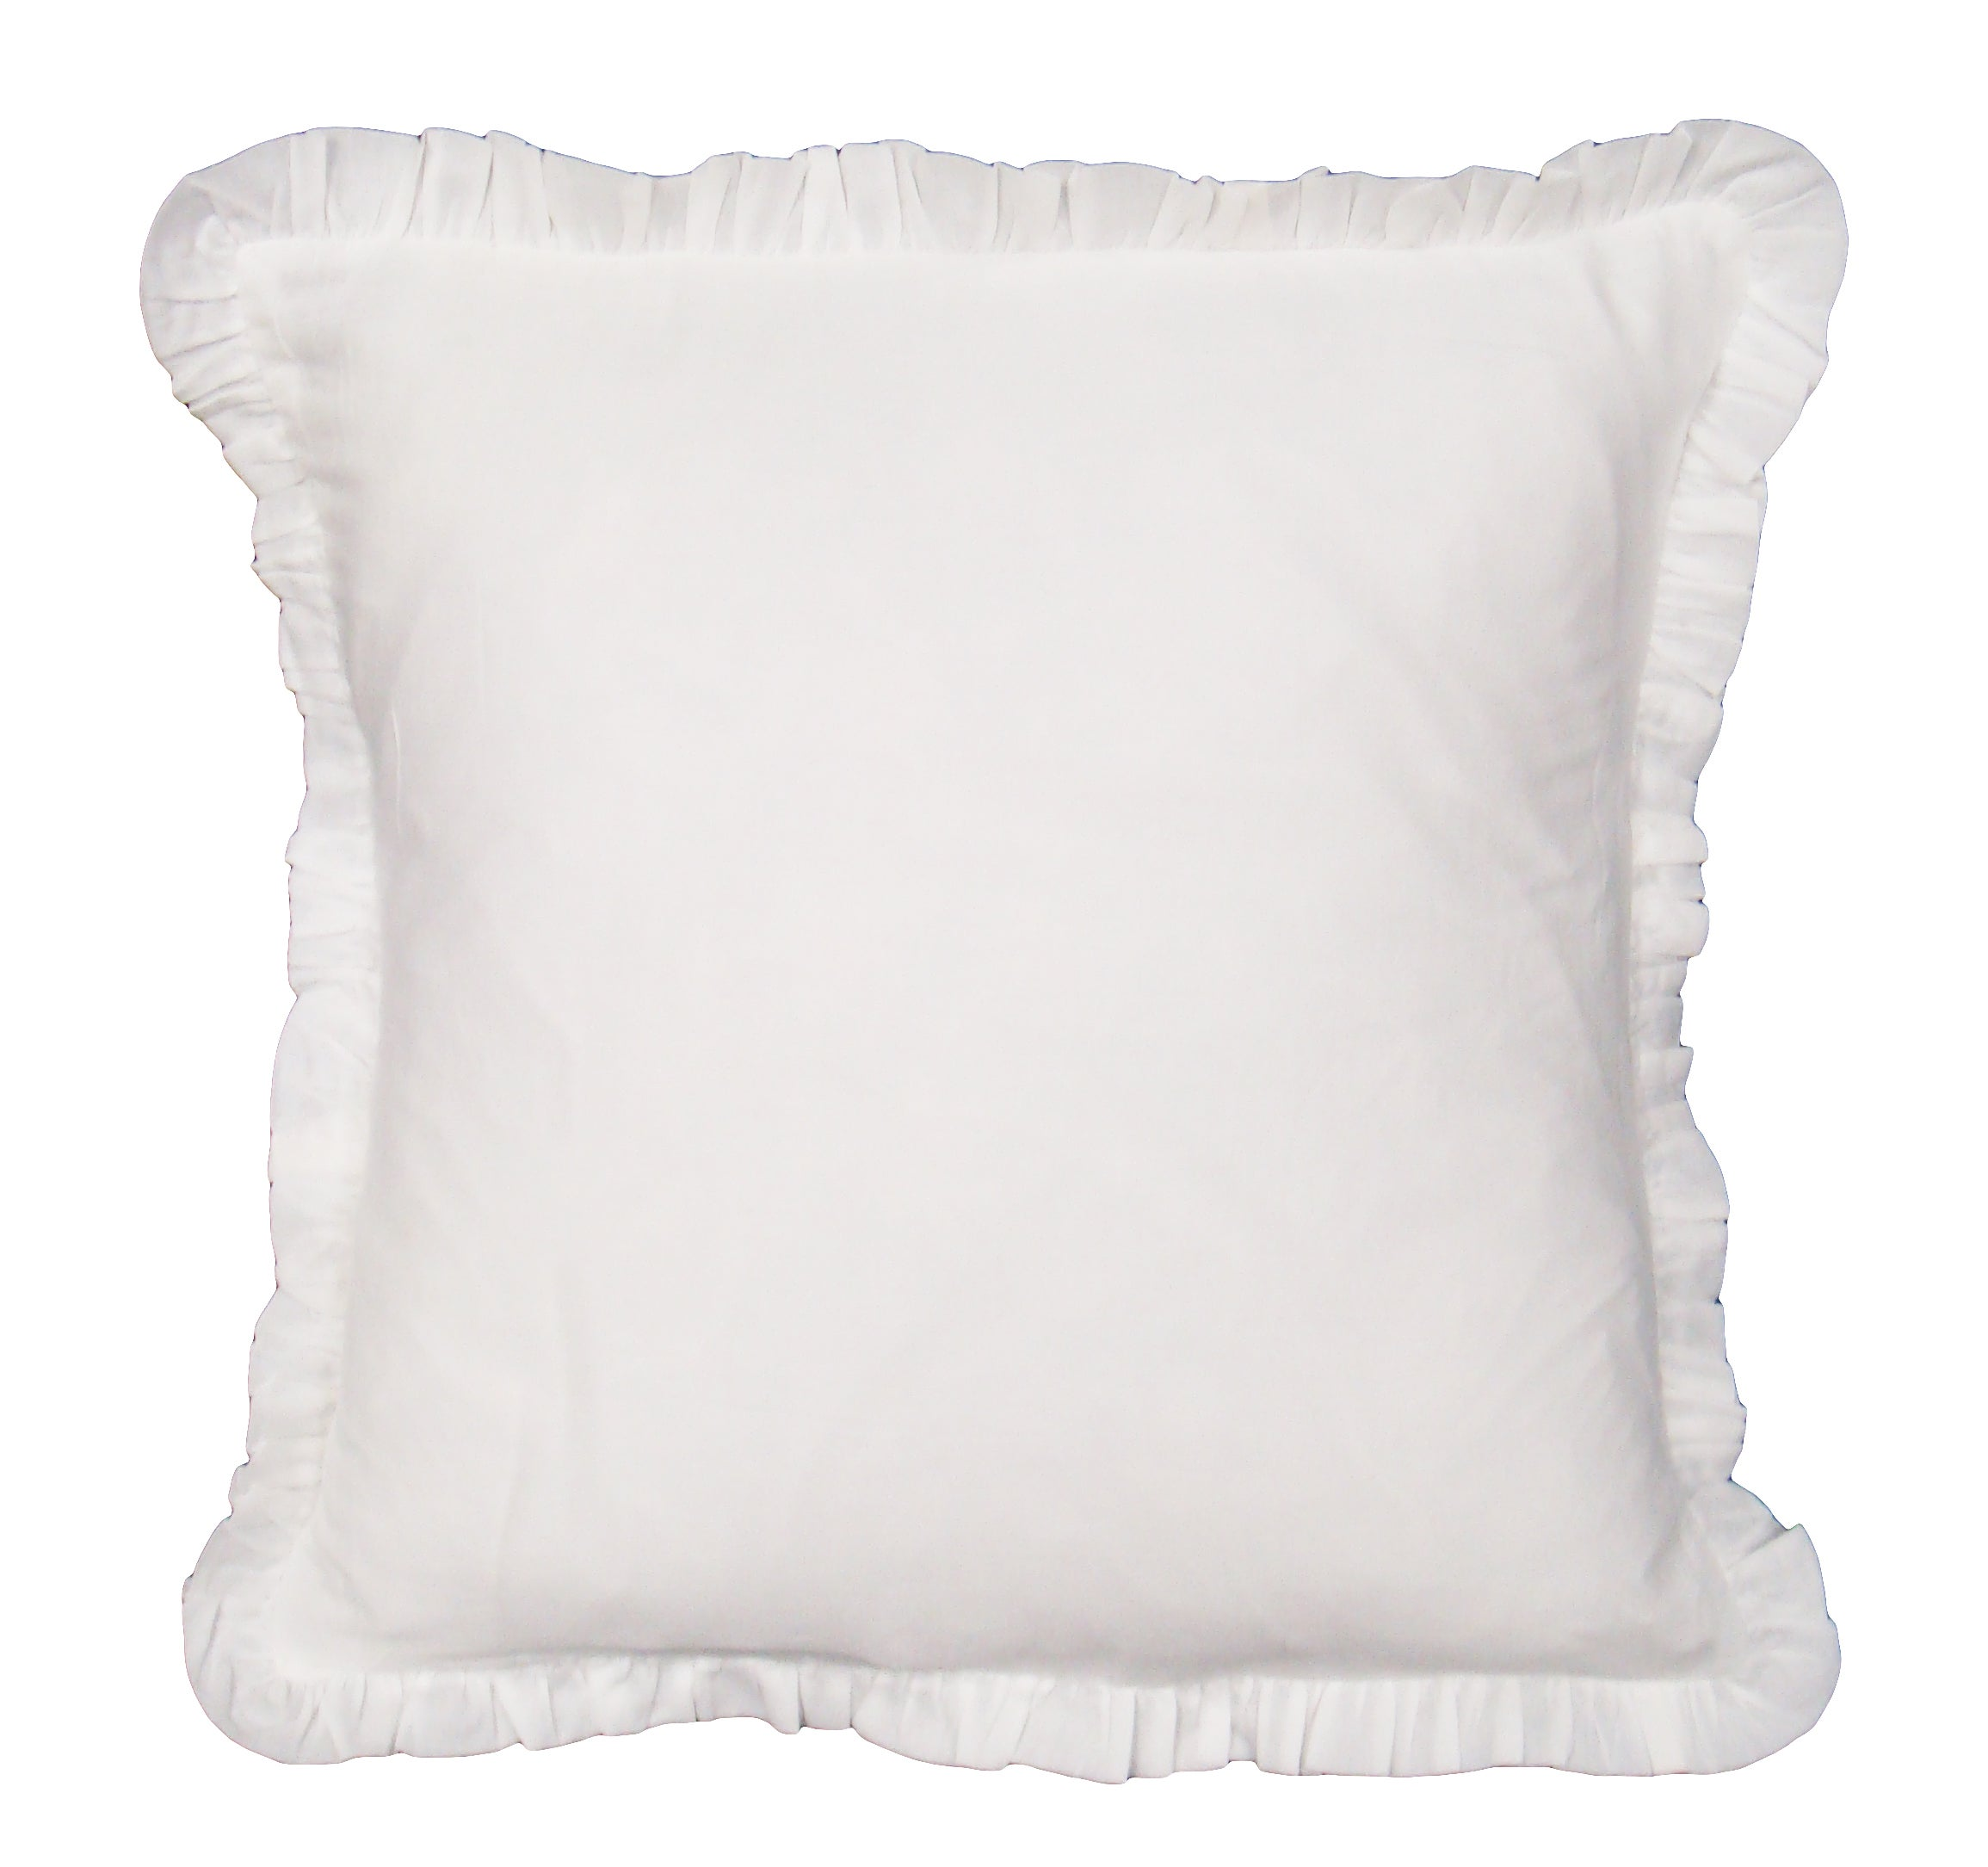 Throw Pillow White : Acelin White Decorative Pillow - Free Shipping Today - Overstock.com - 13864978